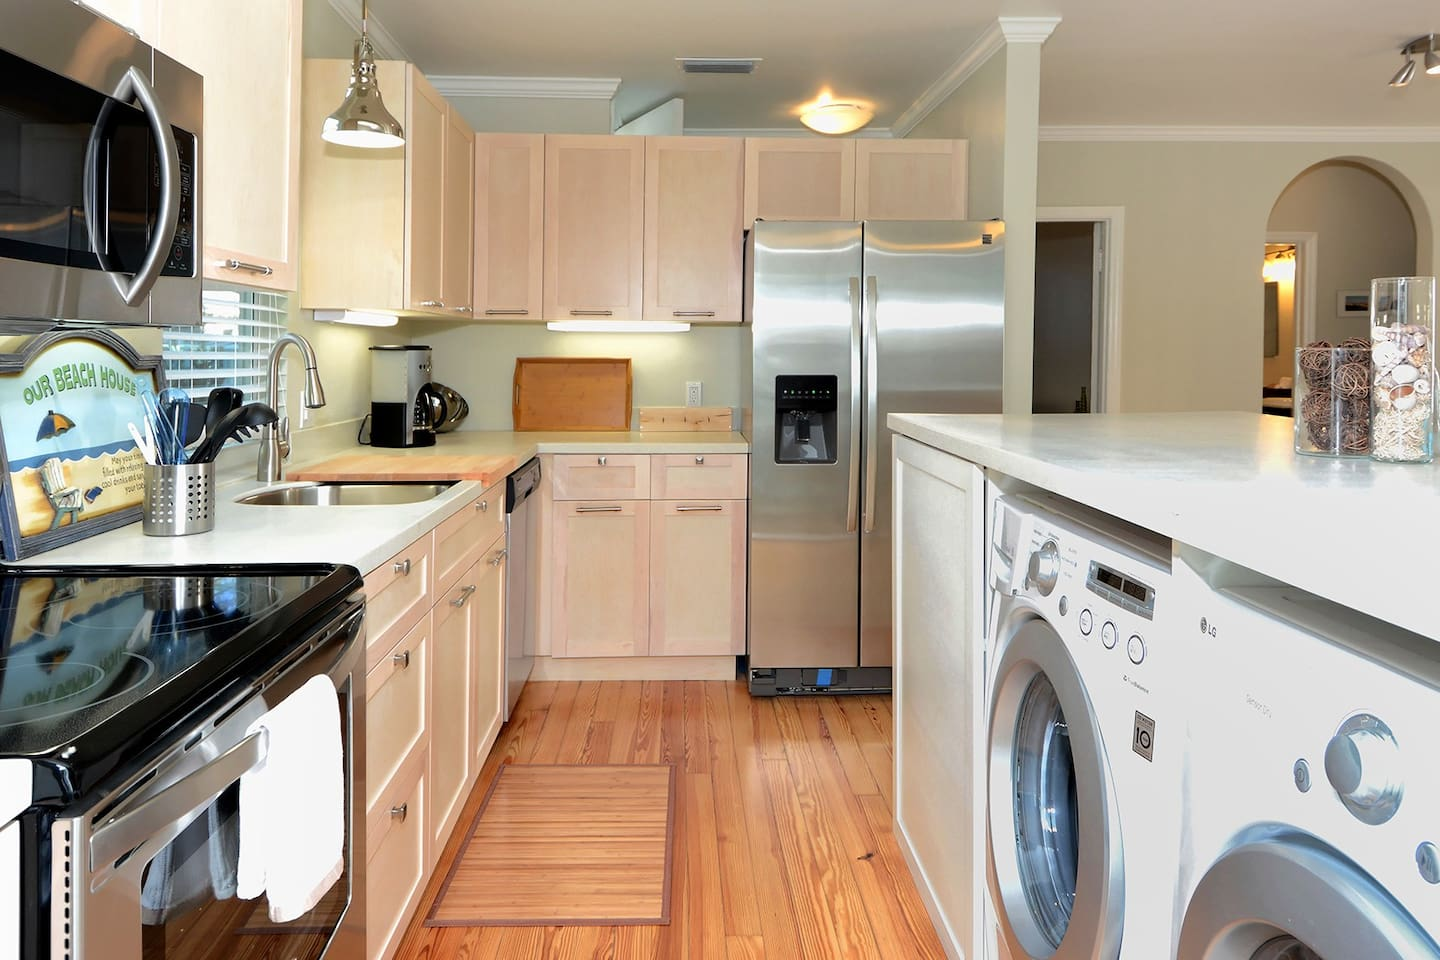 kitchen equipped with washer/dryer/dishwasher